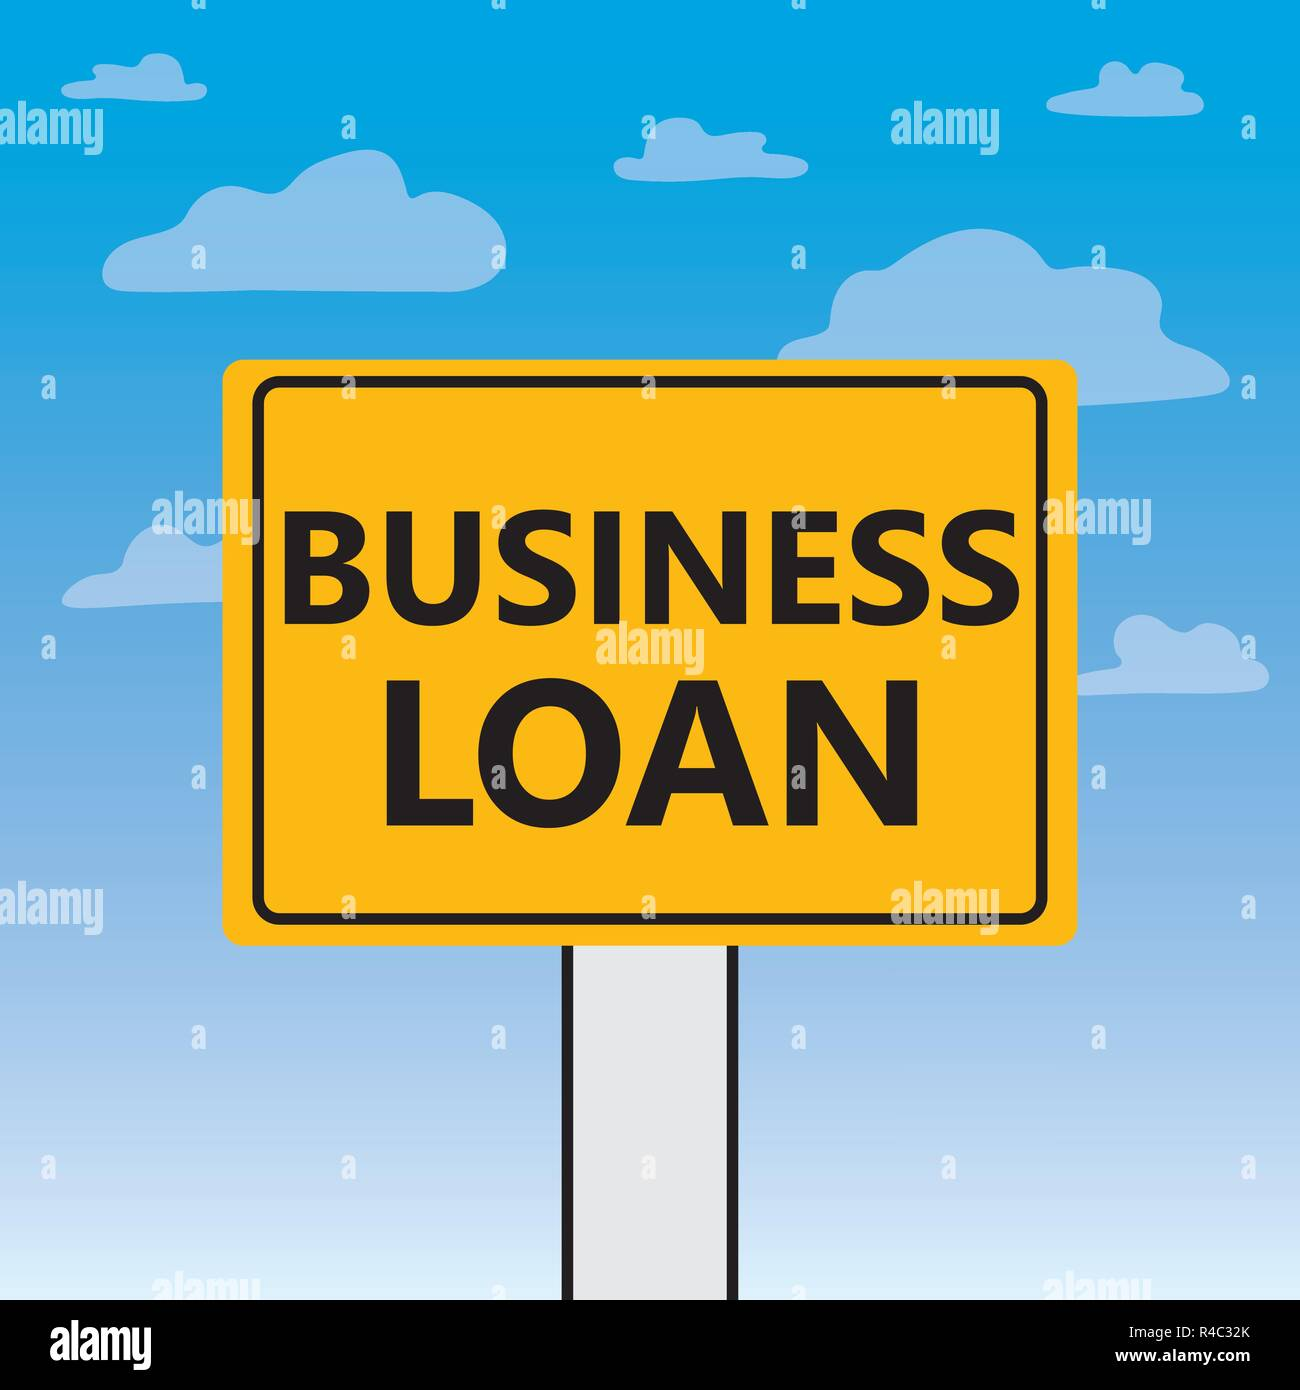 business loan text on a billboard- vector illustration - Stock Image